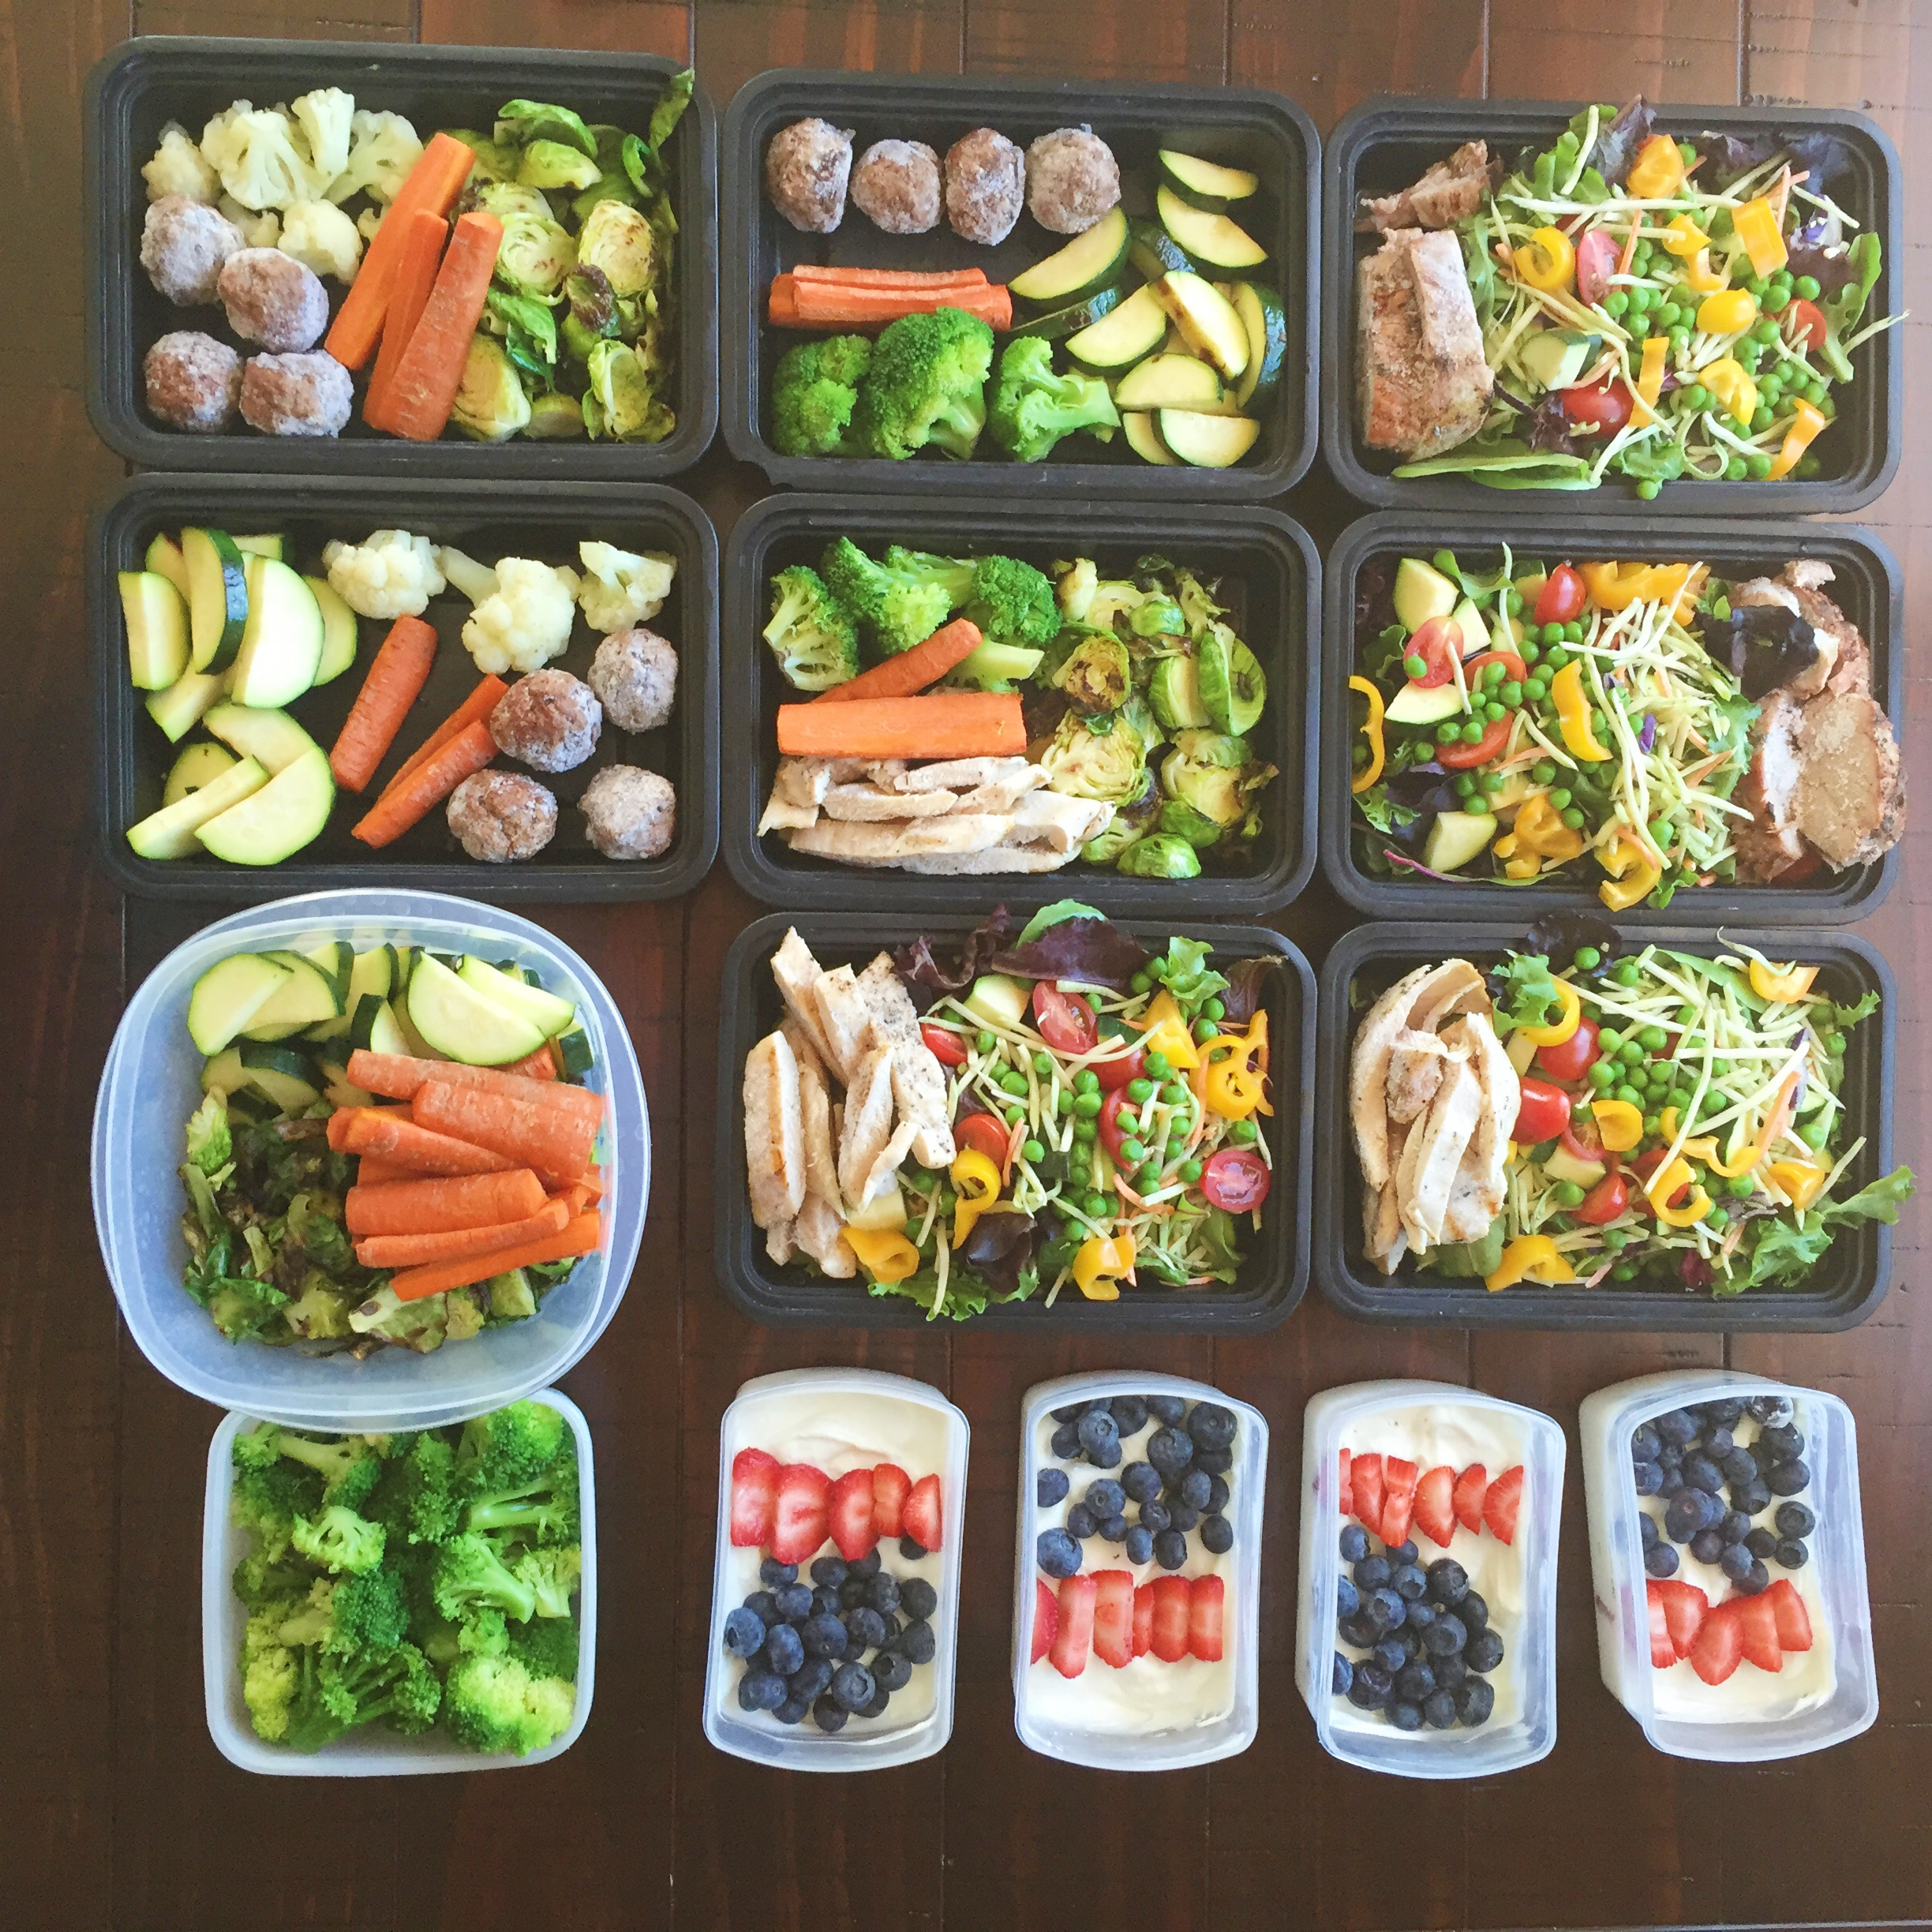 Grocery Shopping Amp Meal Prep Week 10 Eat Lift Play